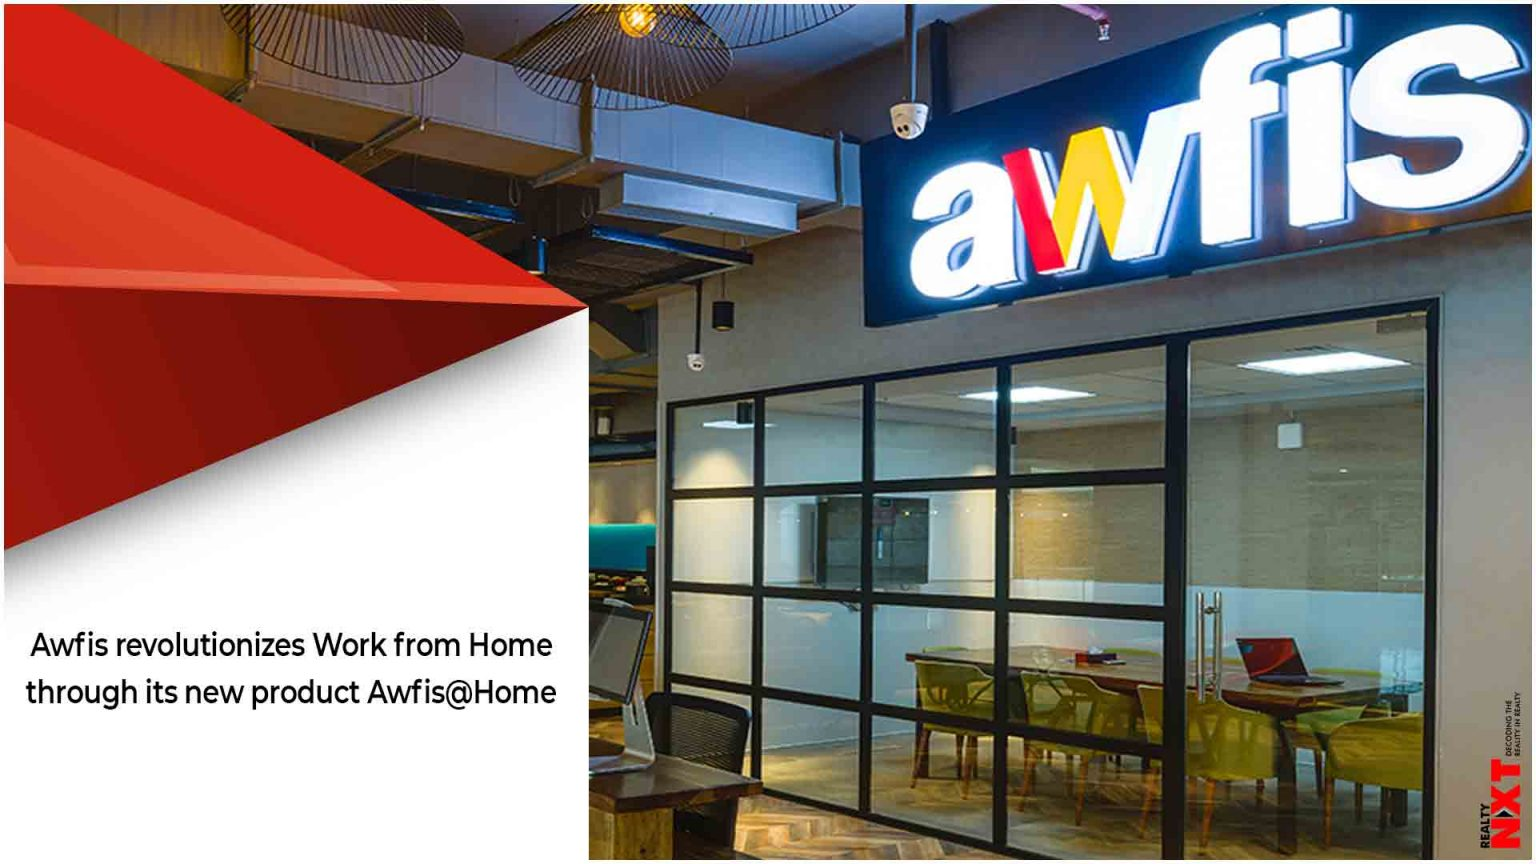 Awfis Has Launched Its Latest Innovative Offering 'Awfis@Home'